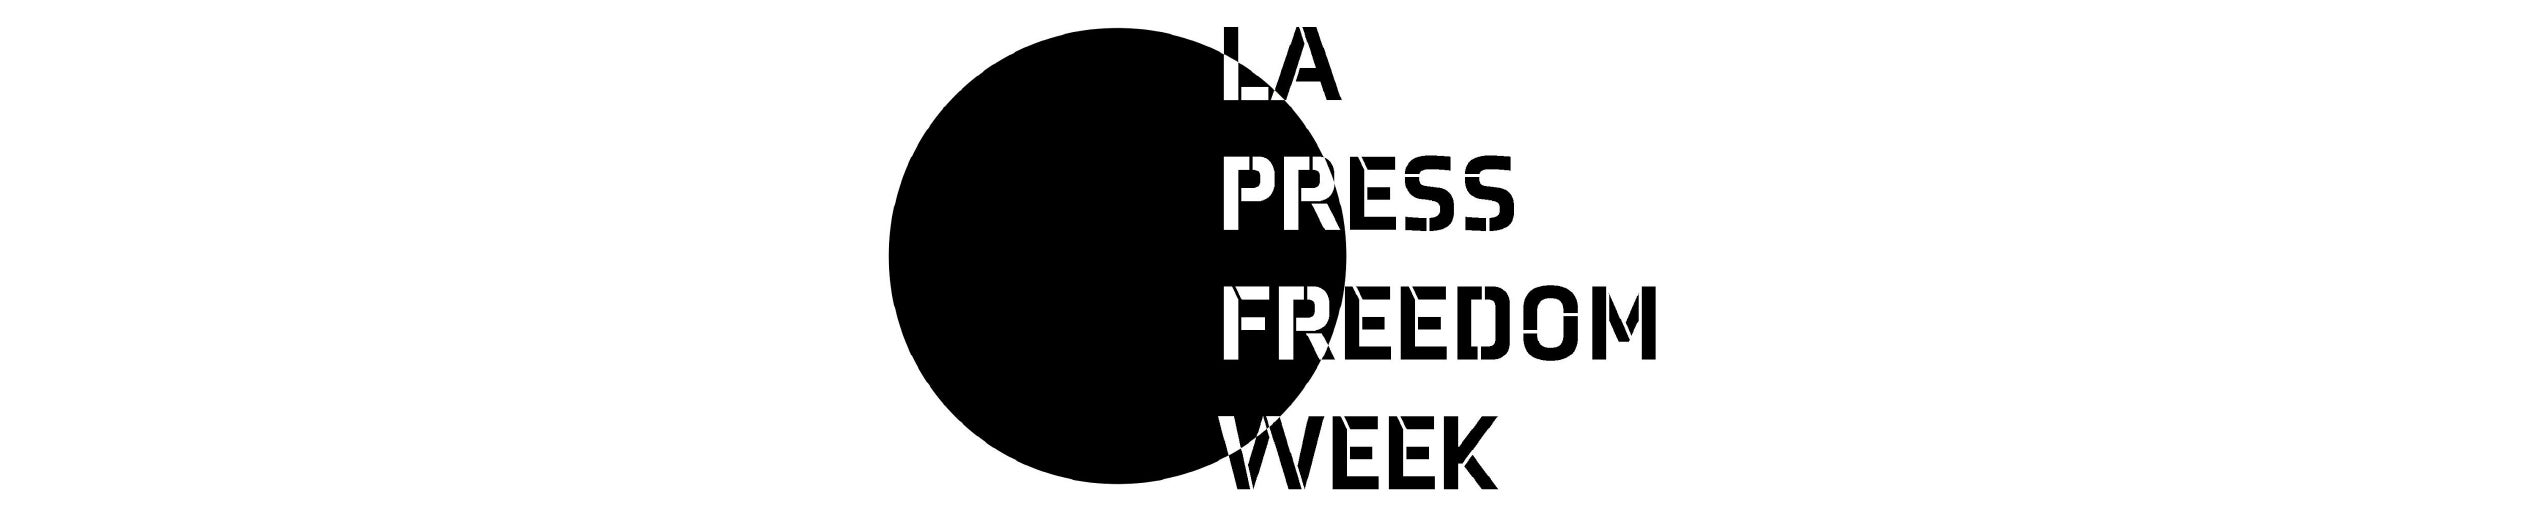 LA Press Freedom Week